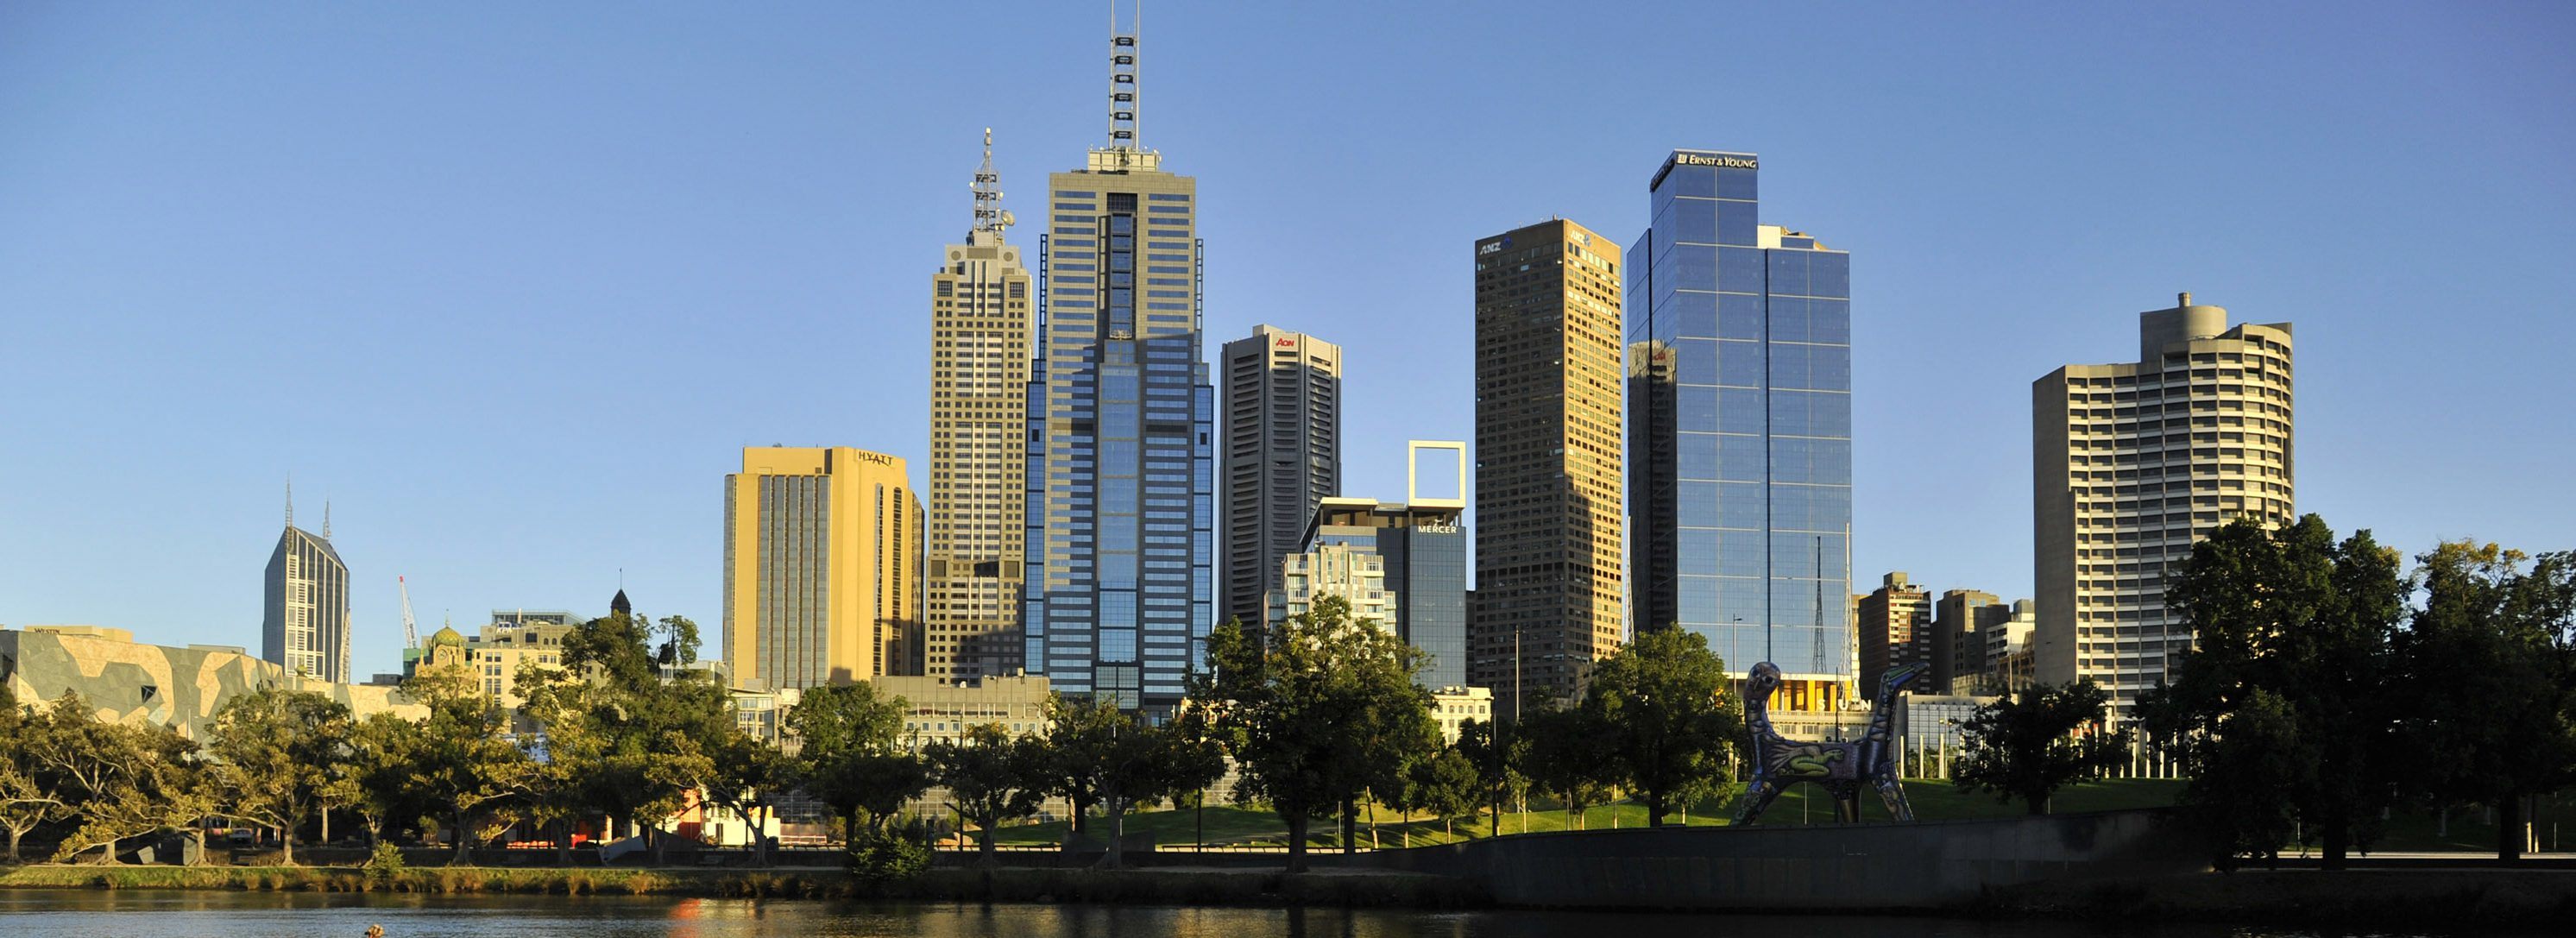 View of Melbourne, Australia from the Yarra River [photo credit: REUTERS/Toby Melville, January 24, 2012]